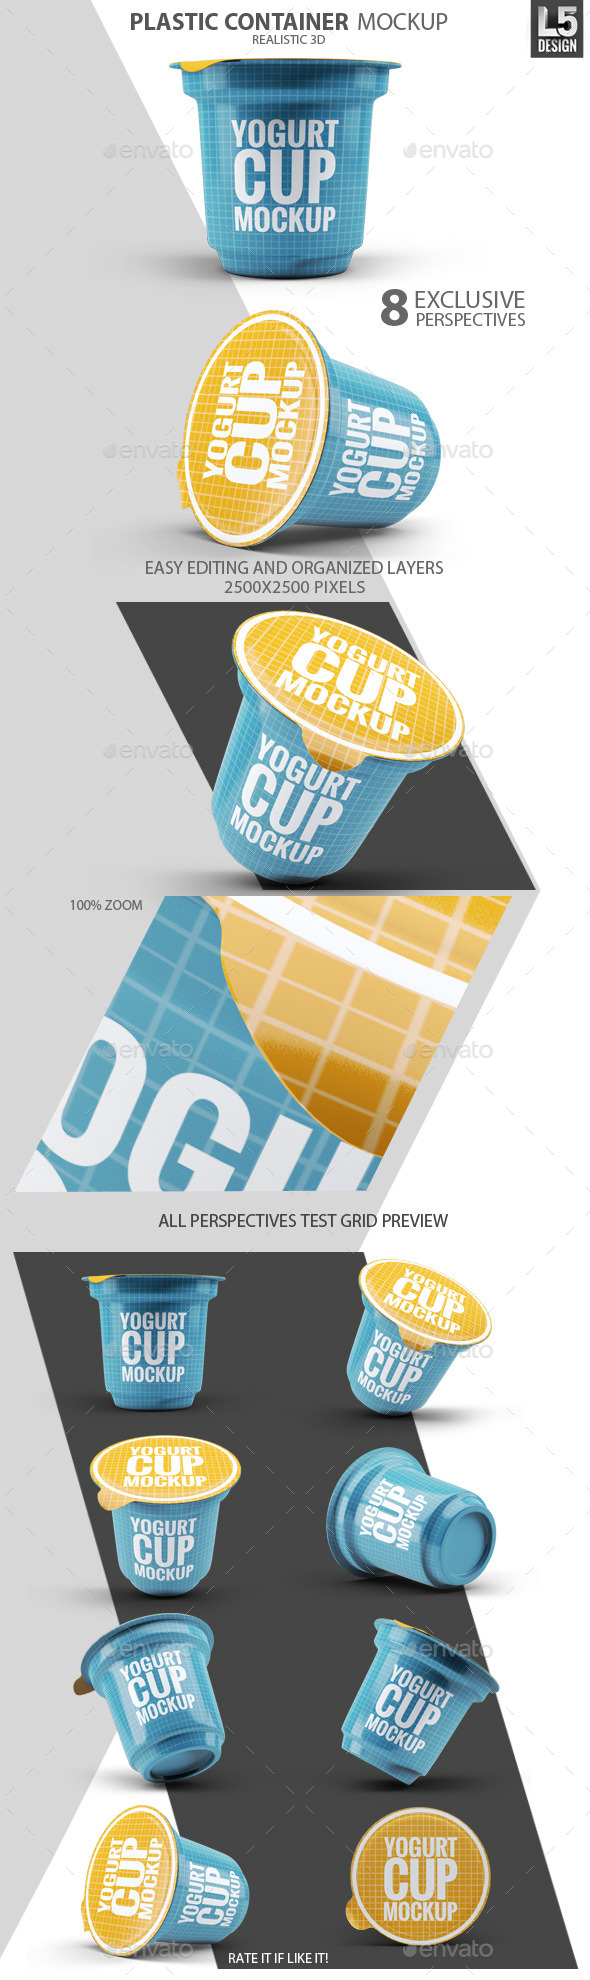 GraphicRiver Plastic Container for Dairy Mock-Up 10311165